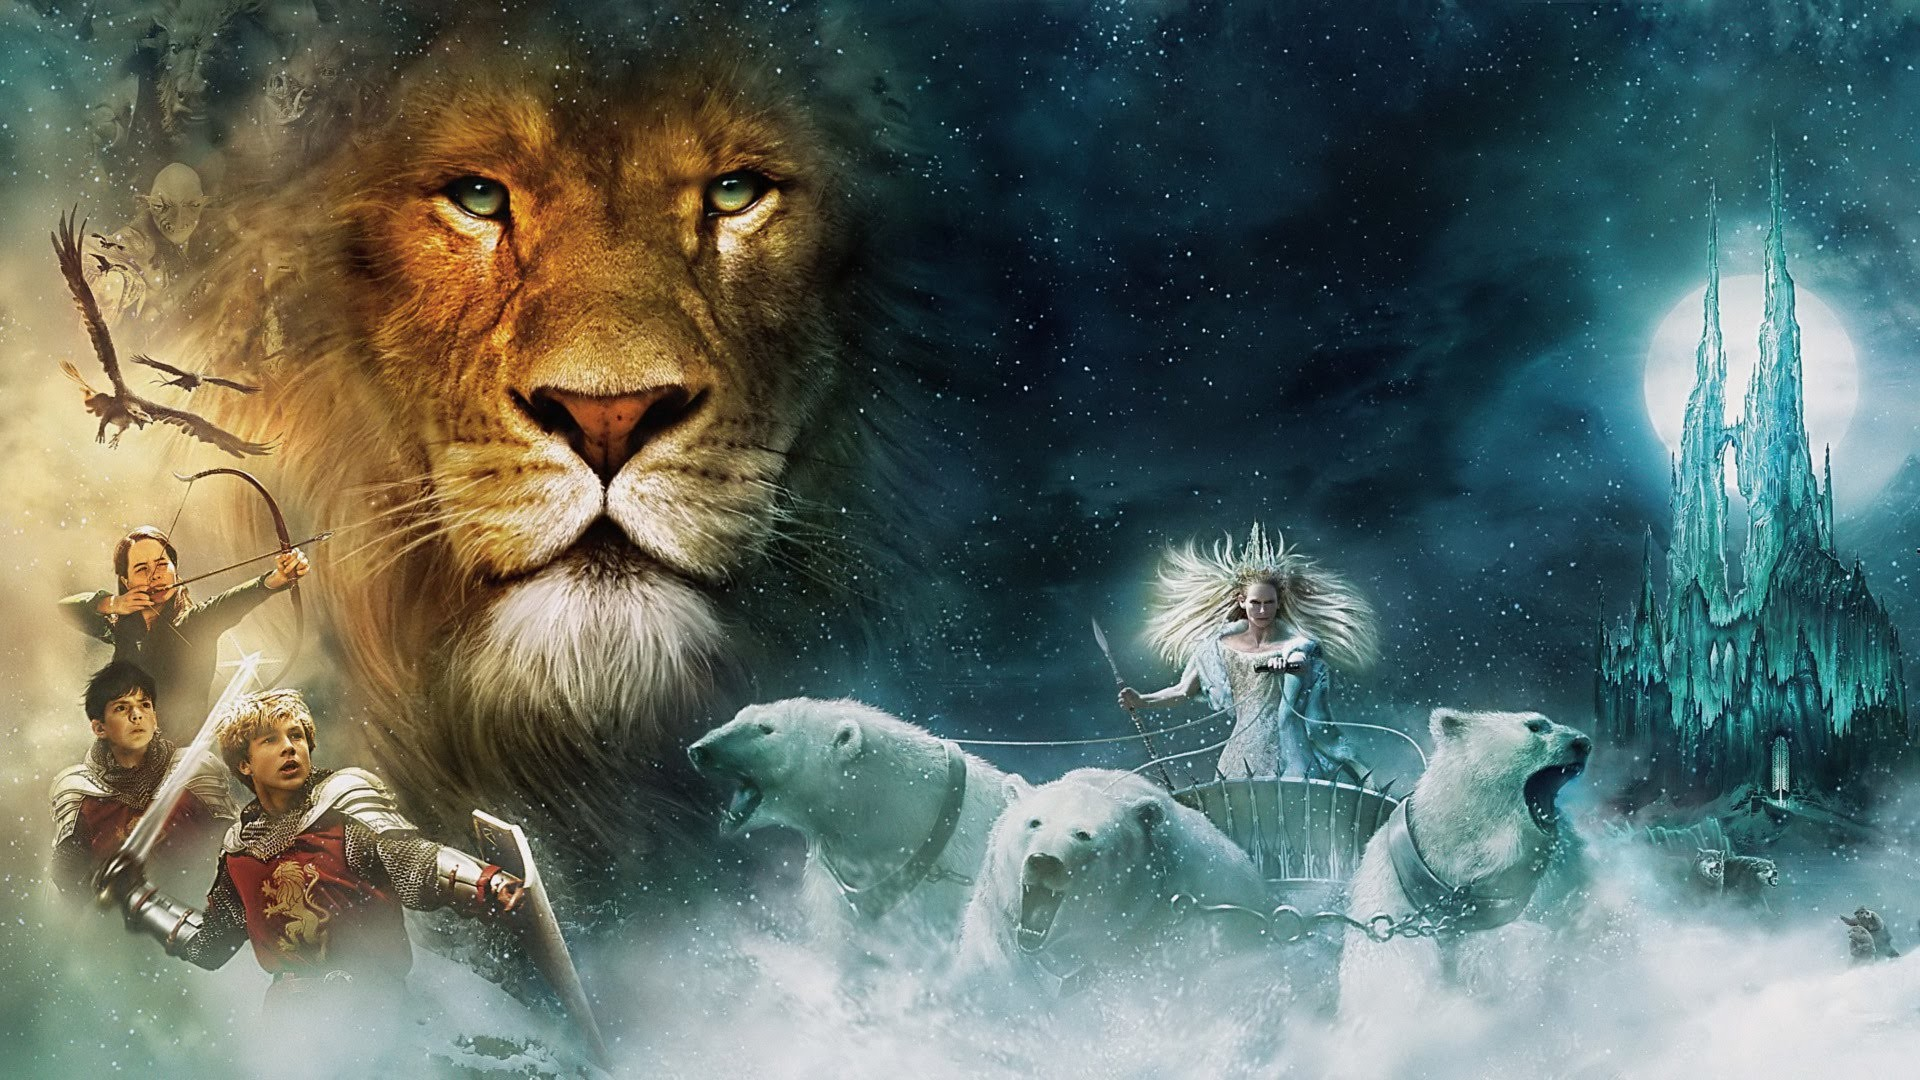 Aslan Narnia Wallpaper Background Photos Apple Tablet Amazing 1920x1080